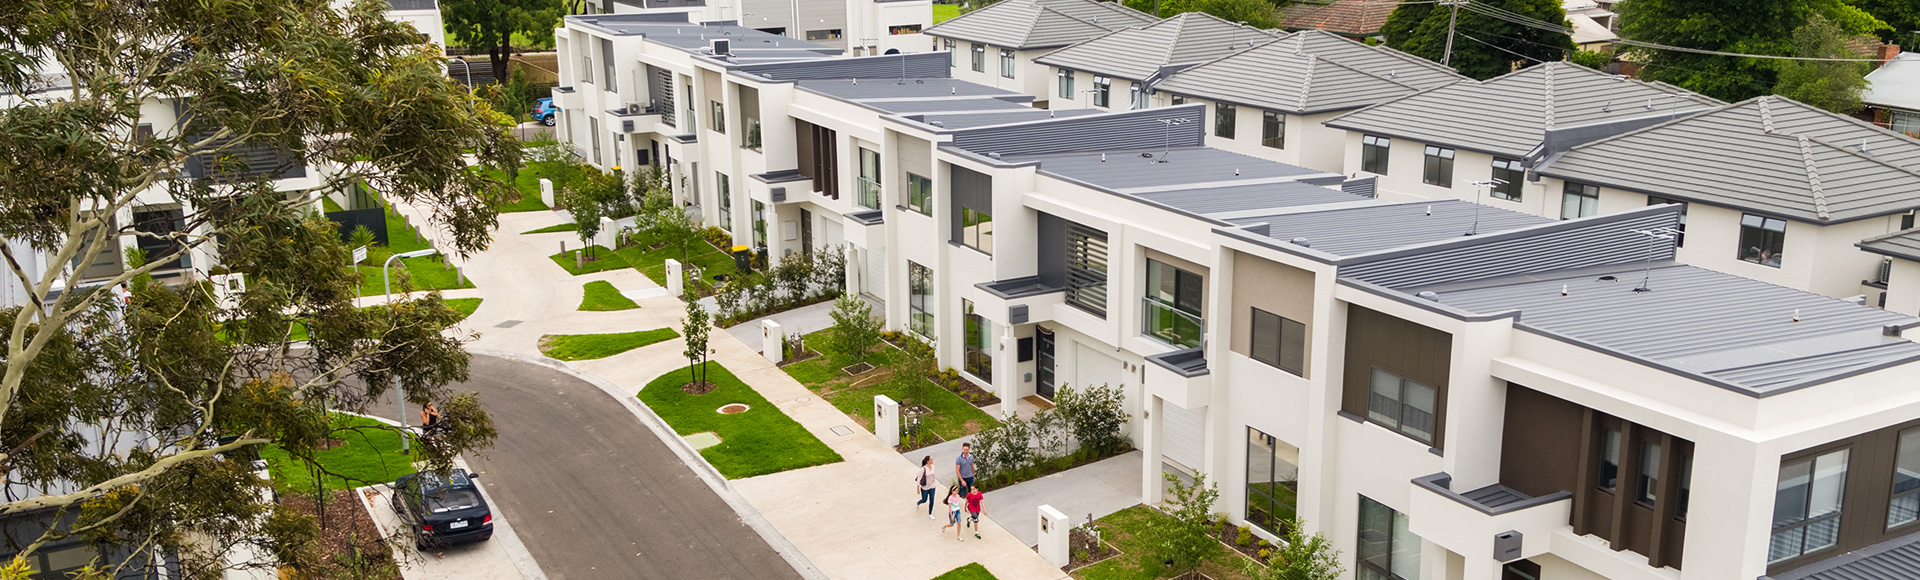 Stockland's Arve townhome development in the Melbourne suburb of Ivanhoe, Vic.